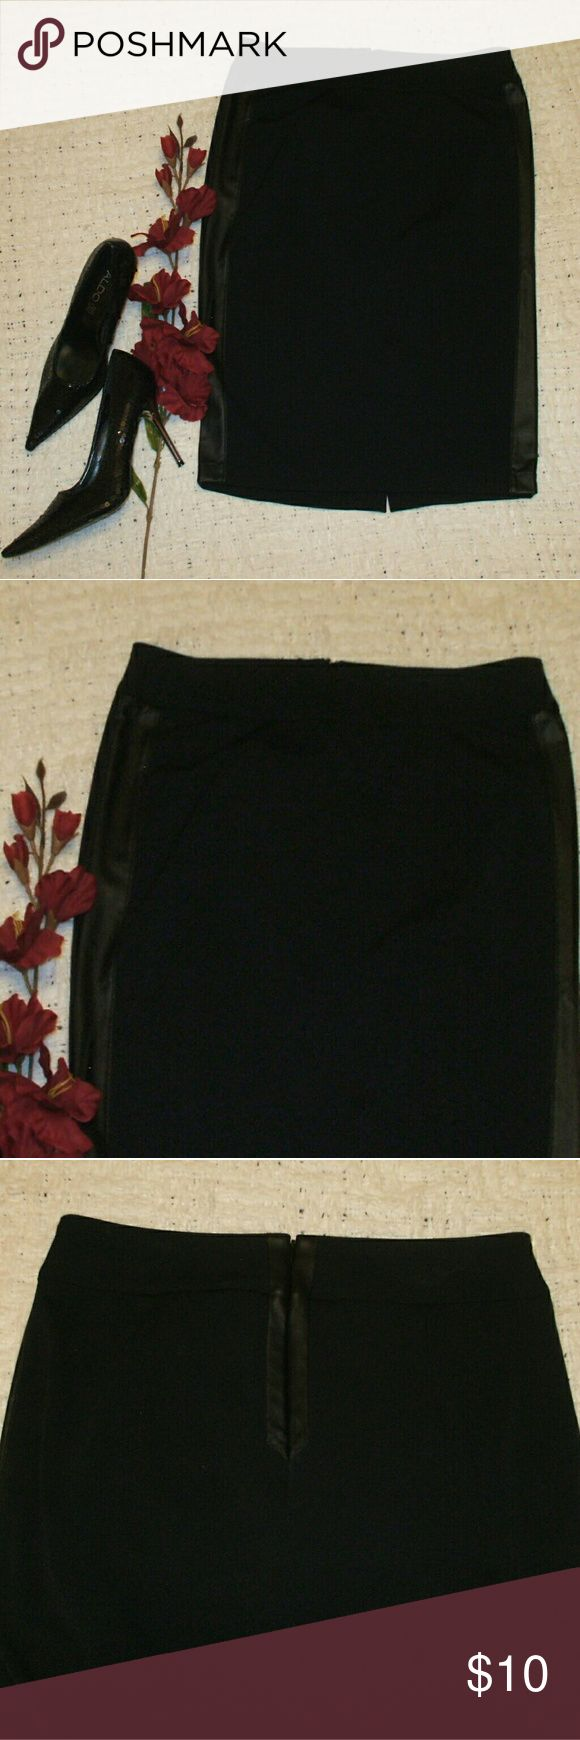 Black Pencil Skirt w/ Faux Leather Pencil skirt - Black with matching faux leather tuxedo stripes - 96% polyester, 4% spandex - Brand new with store tags - smoking home Bisou Bisou Skirts Pencil